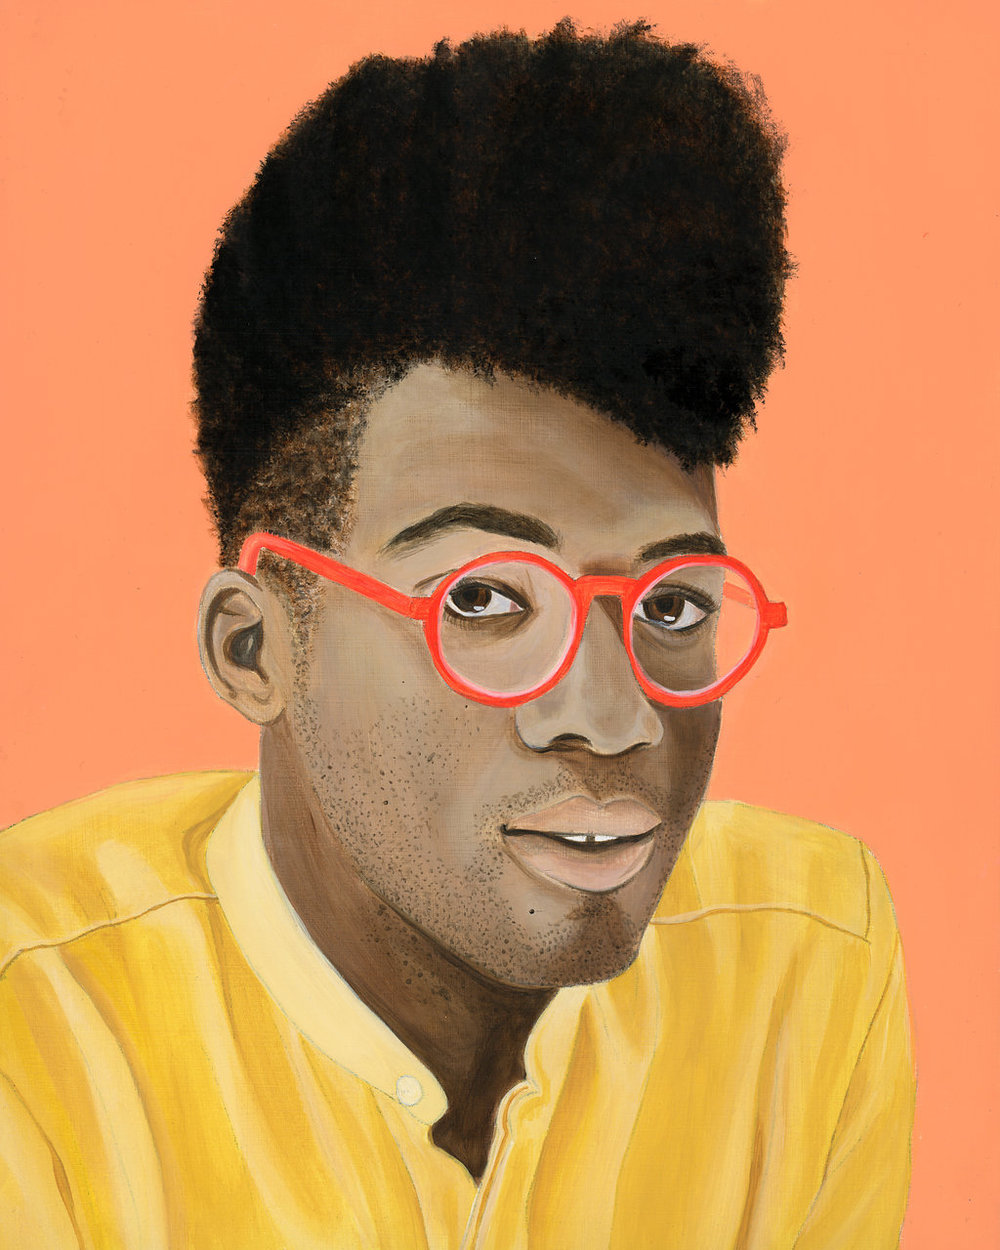 African American man with pink glasses - Curious Darling - J Danielle Wehunt